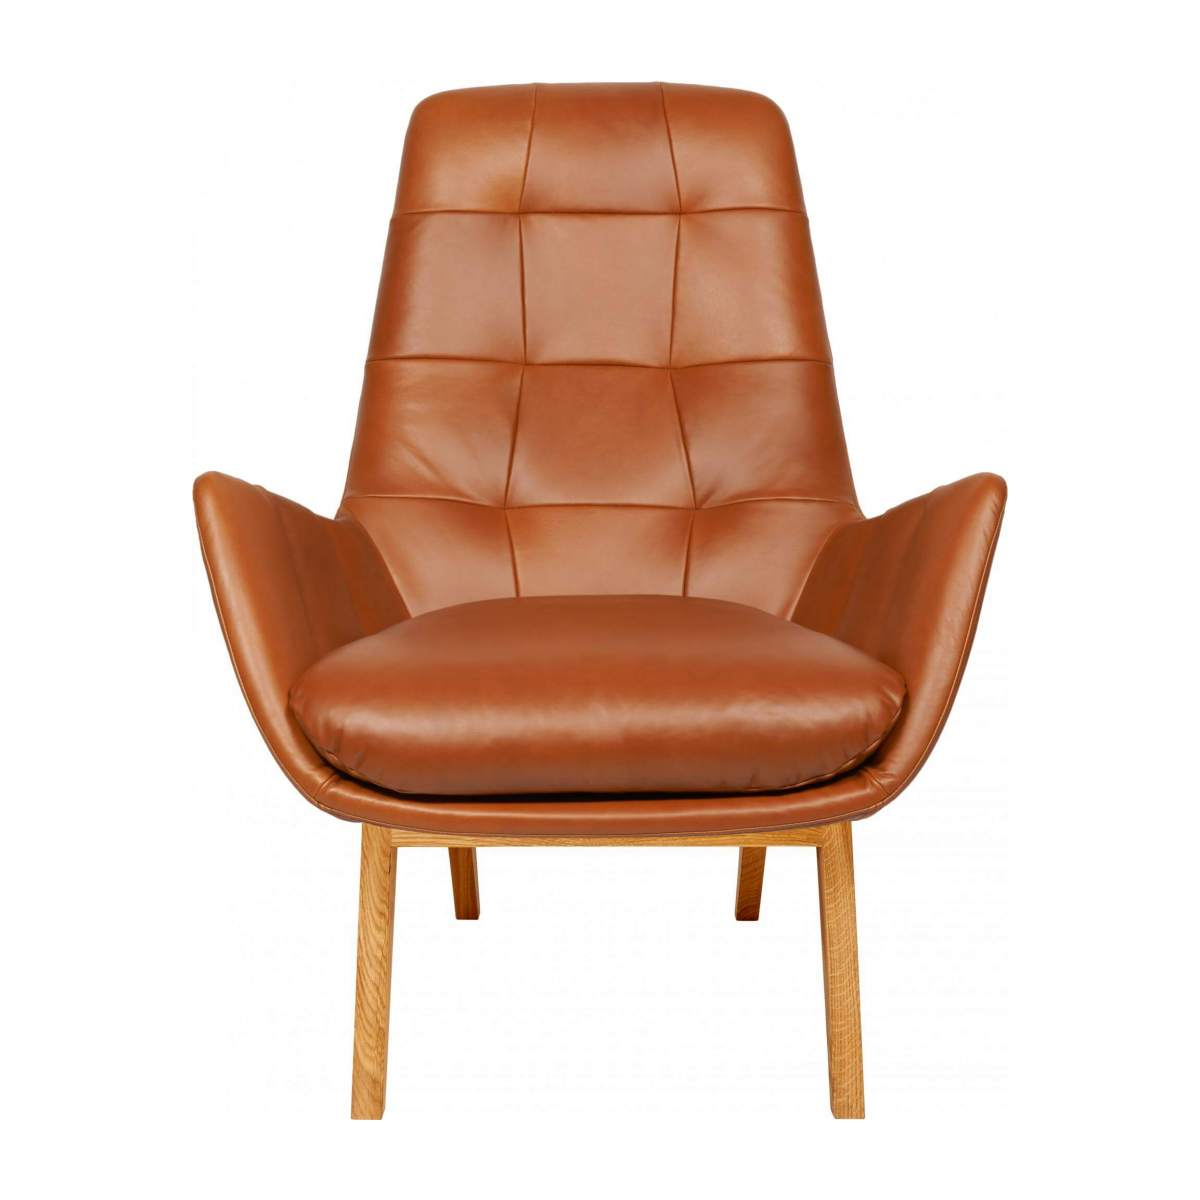 Armchair in Vintage aniline leather, old Chestnut with oak legs n°1